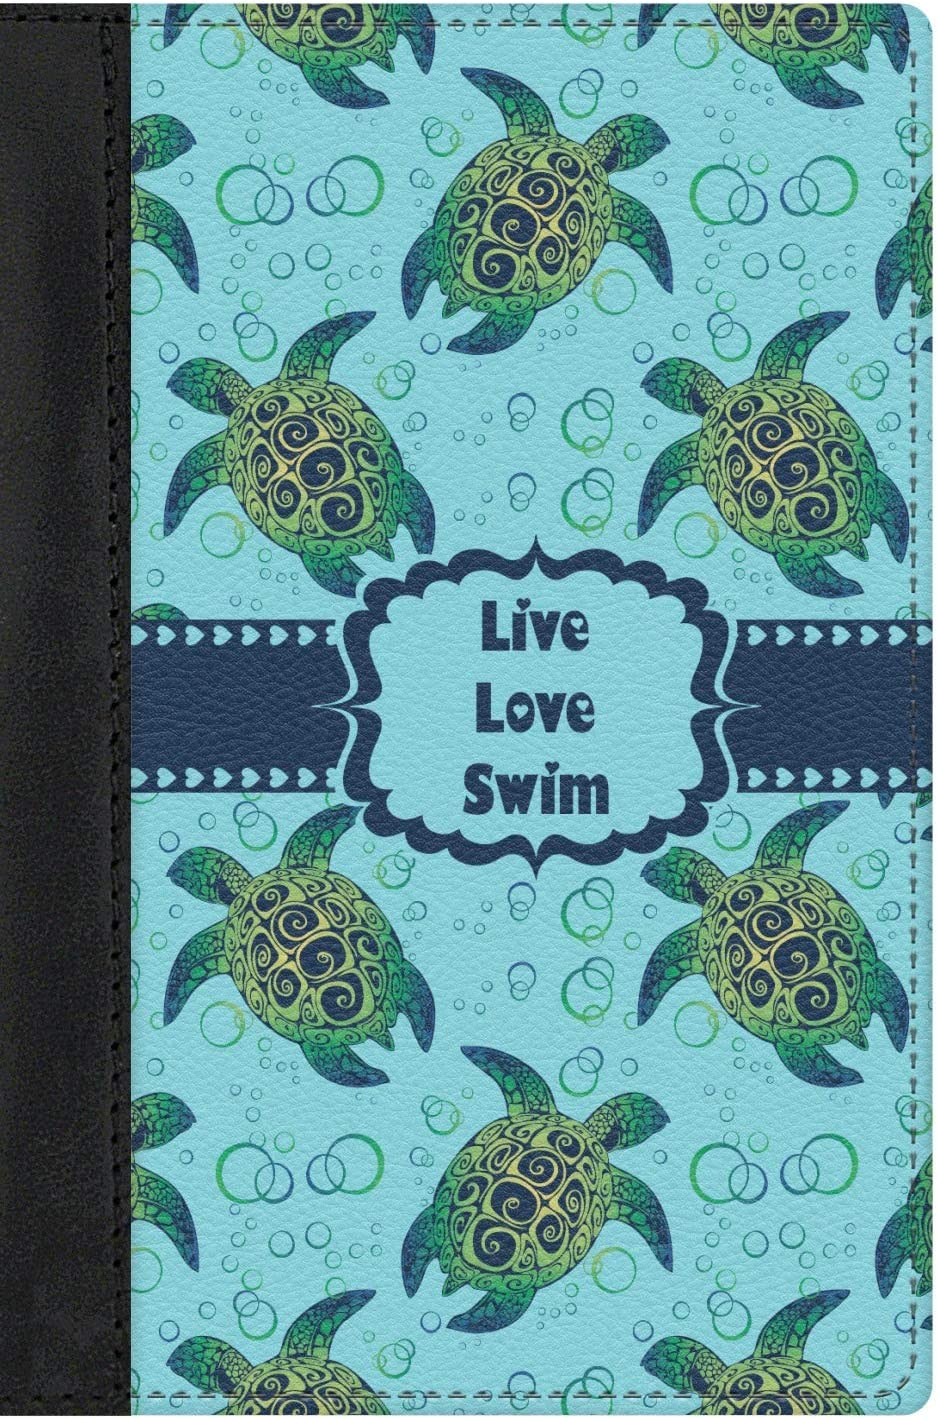 Personalized Sea Turtles Genuine Leather Passport Cover